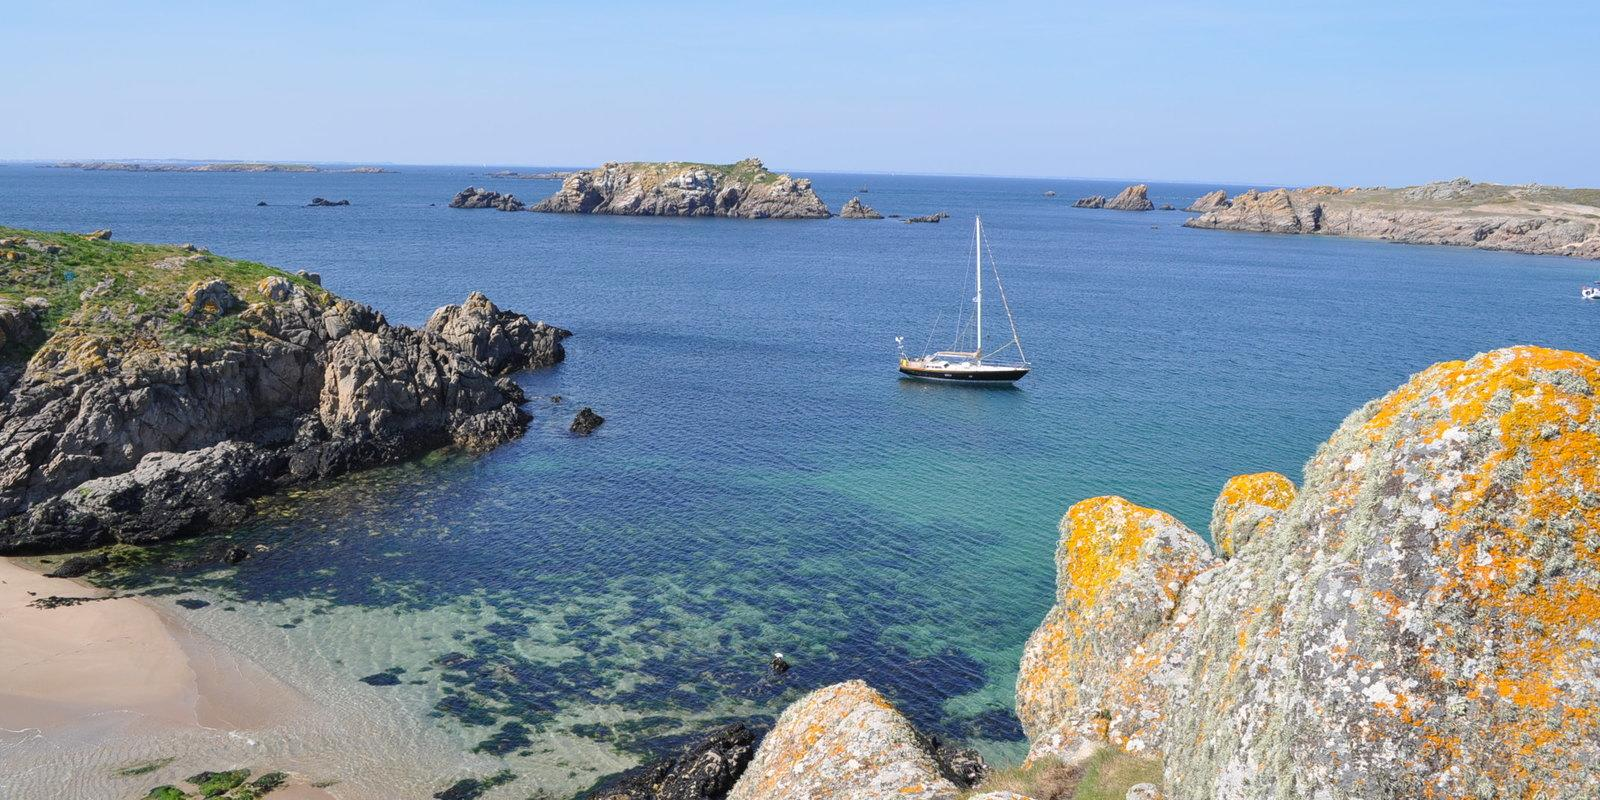 5-day sailboat cruise to the Pays du Ponant in Southern Brittany